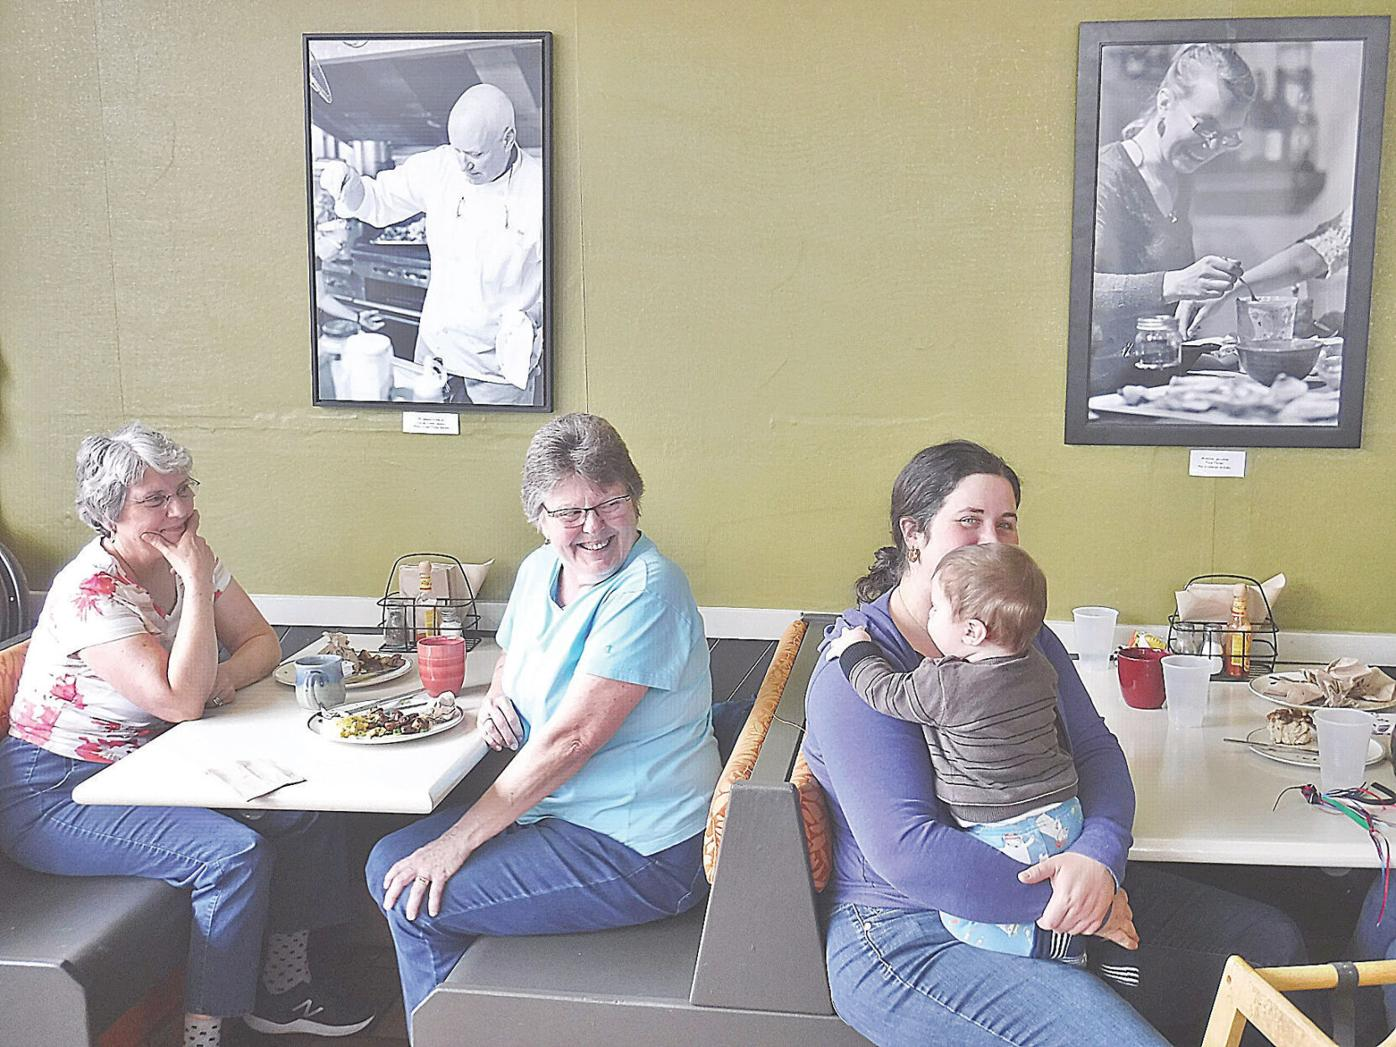 The Porch Cafe and Catering: Serving up local food brings statewide honor